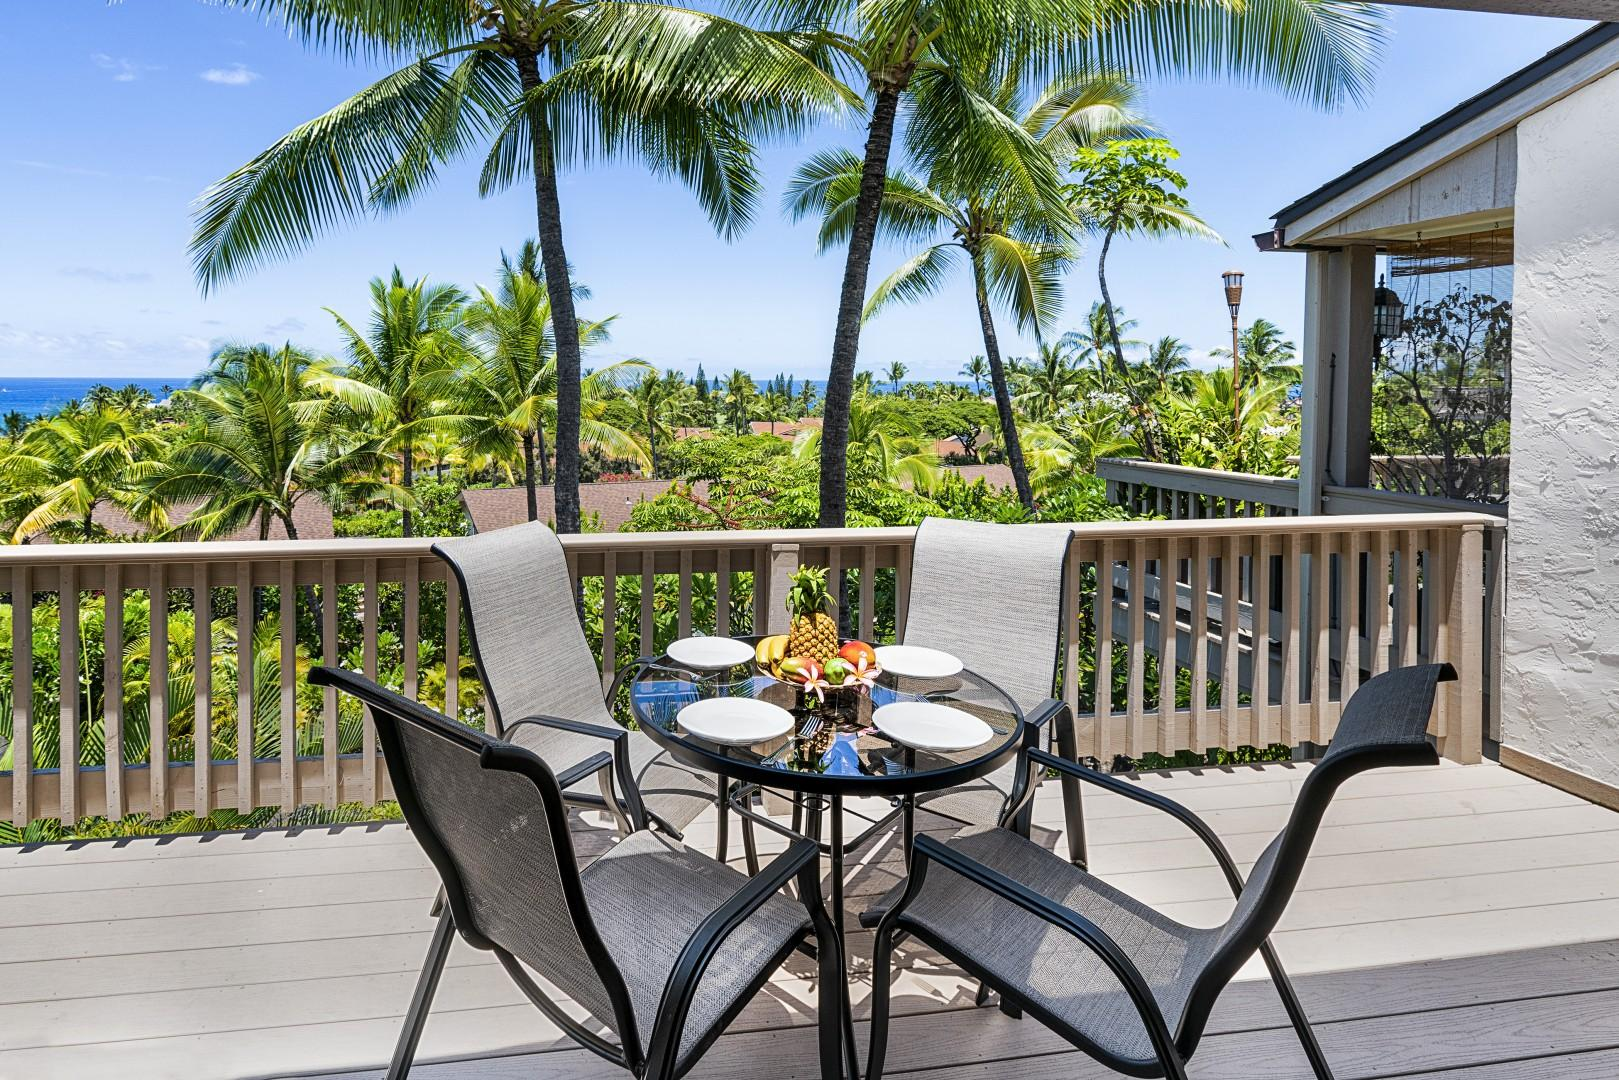 Enjoy dinner while listening to the waves!